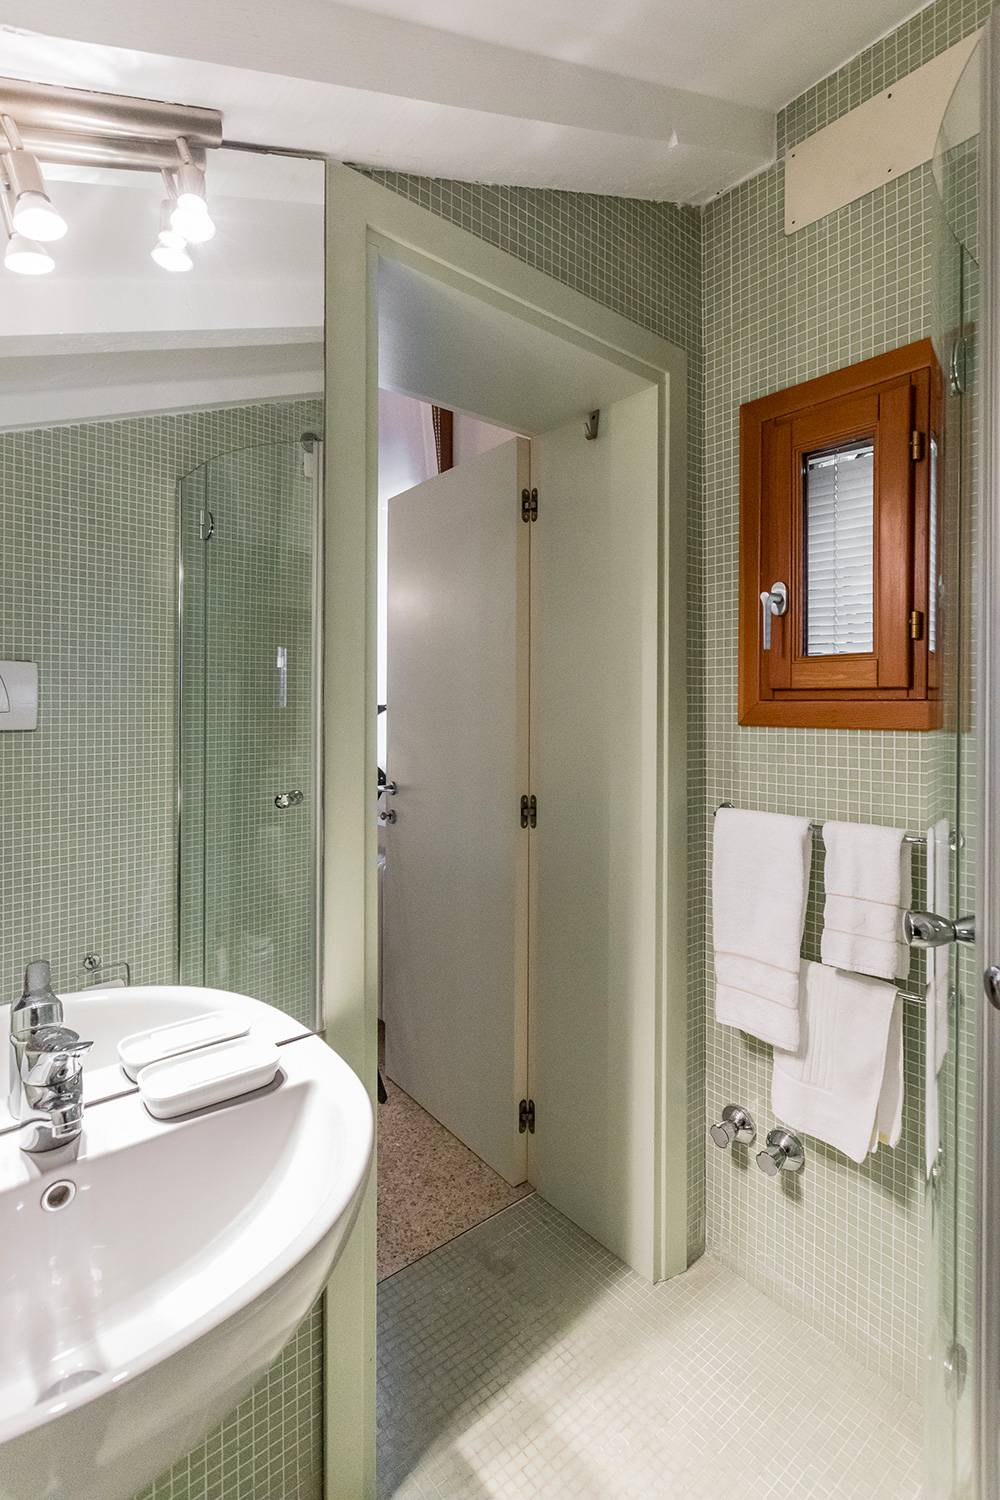 the en-suite bathroom has a shower box